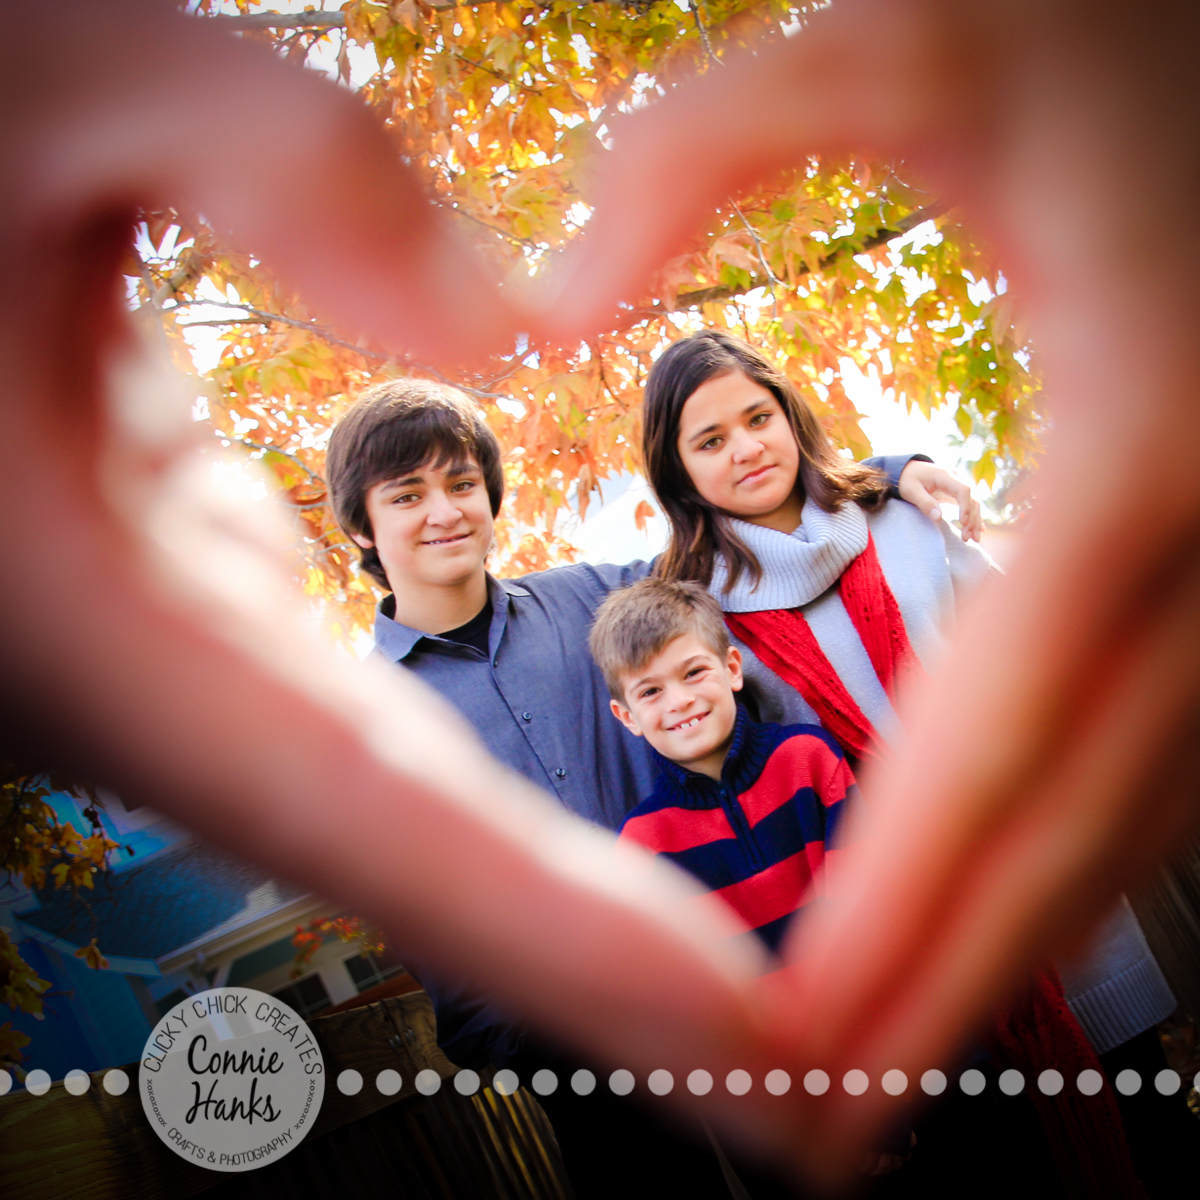 Connie Hanks Photography // ClickyChickCreates.com // family photos, rustic location, posh kids, heart hands